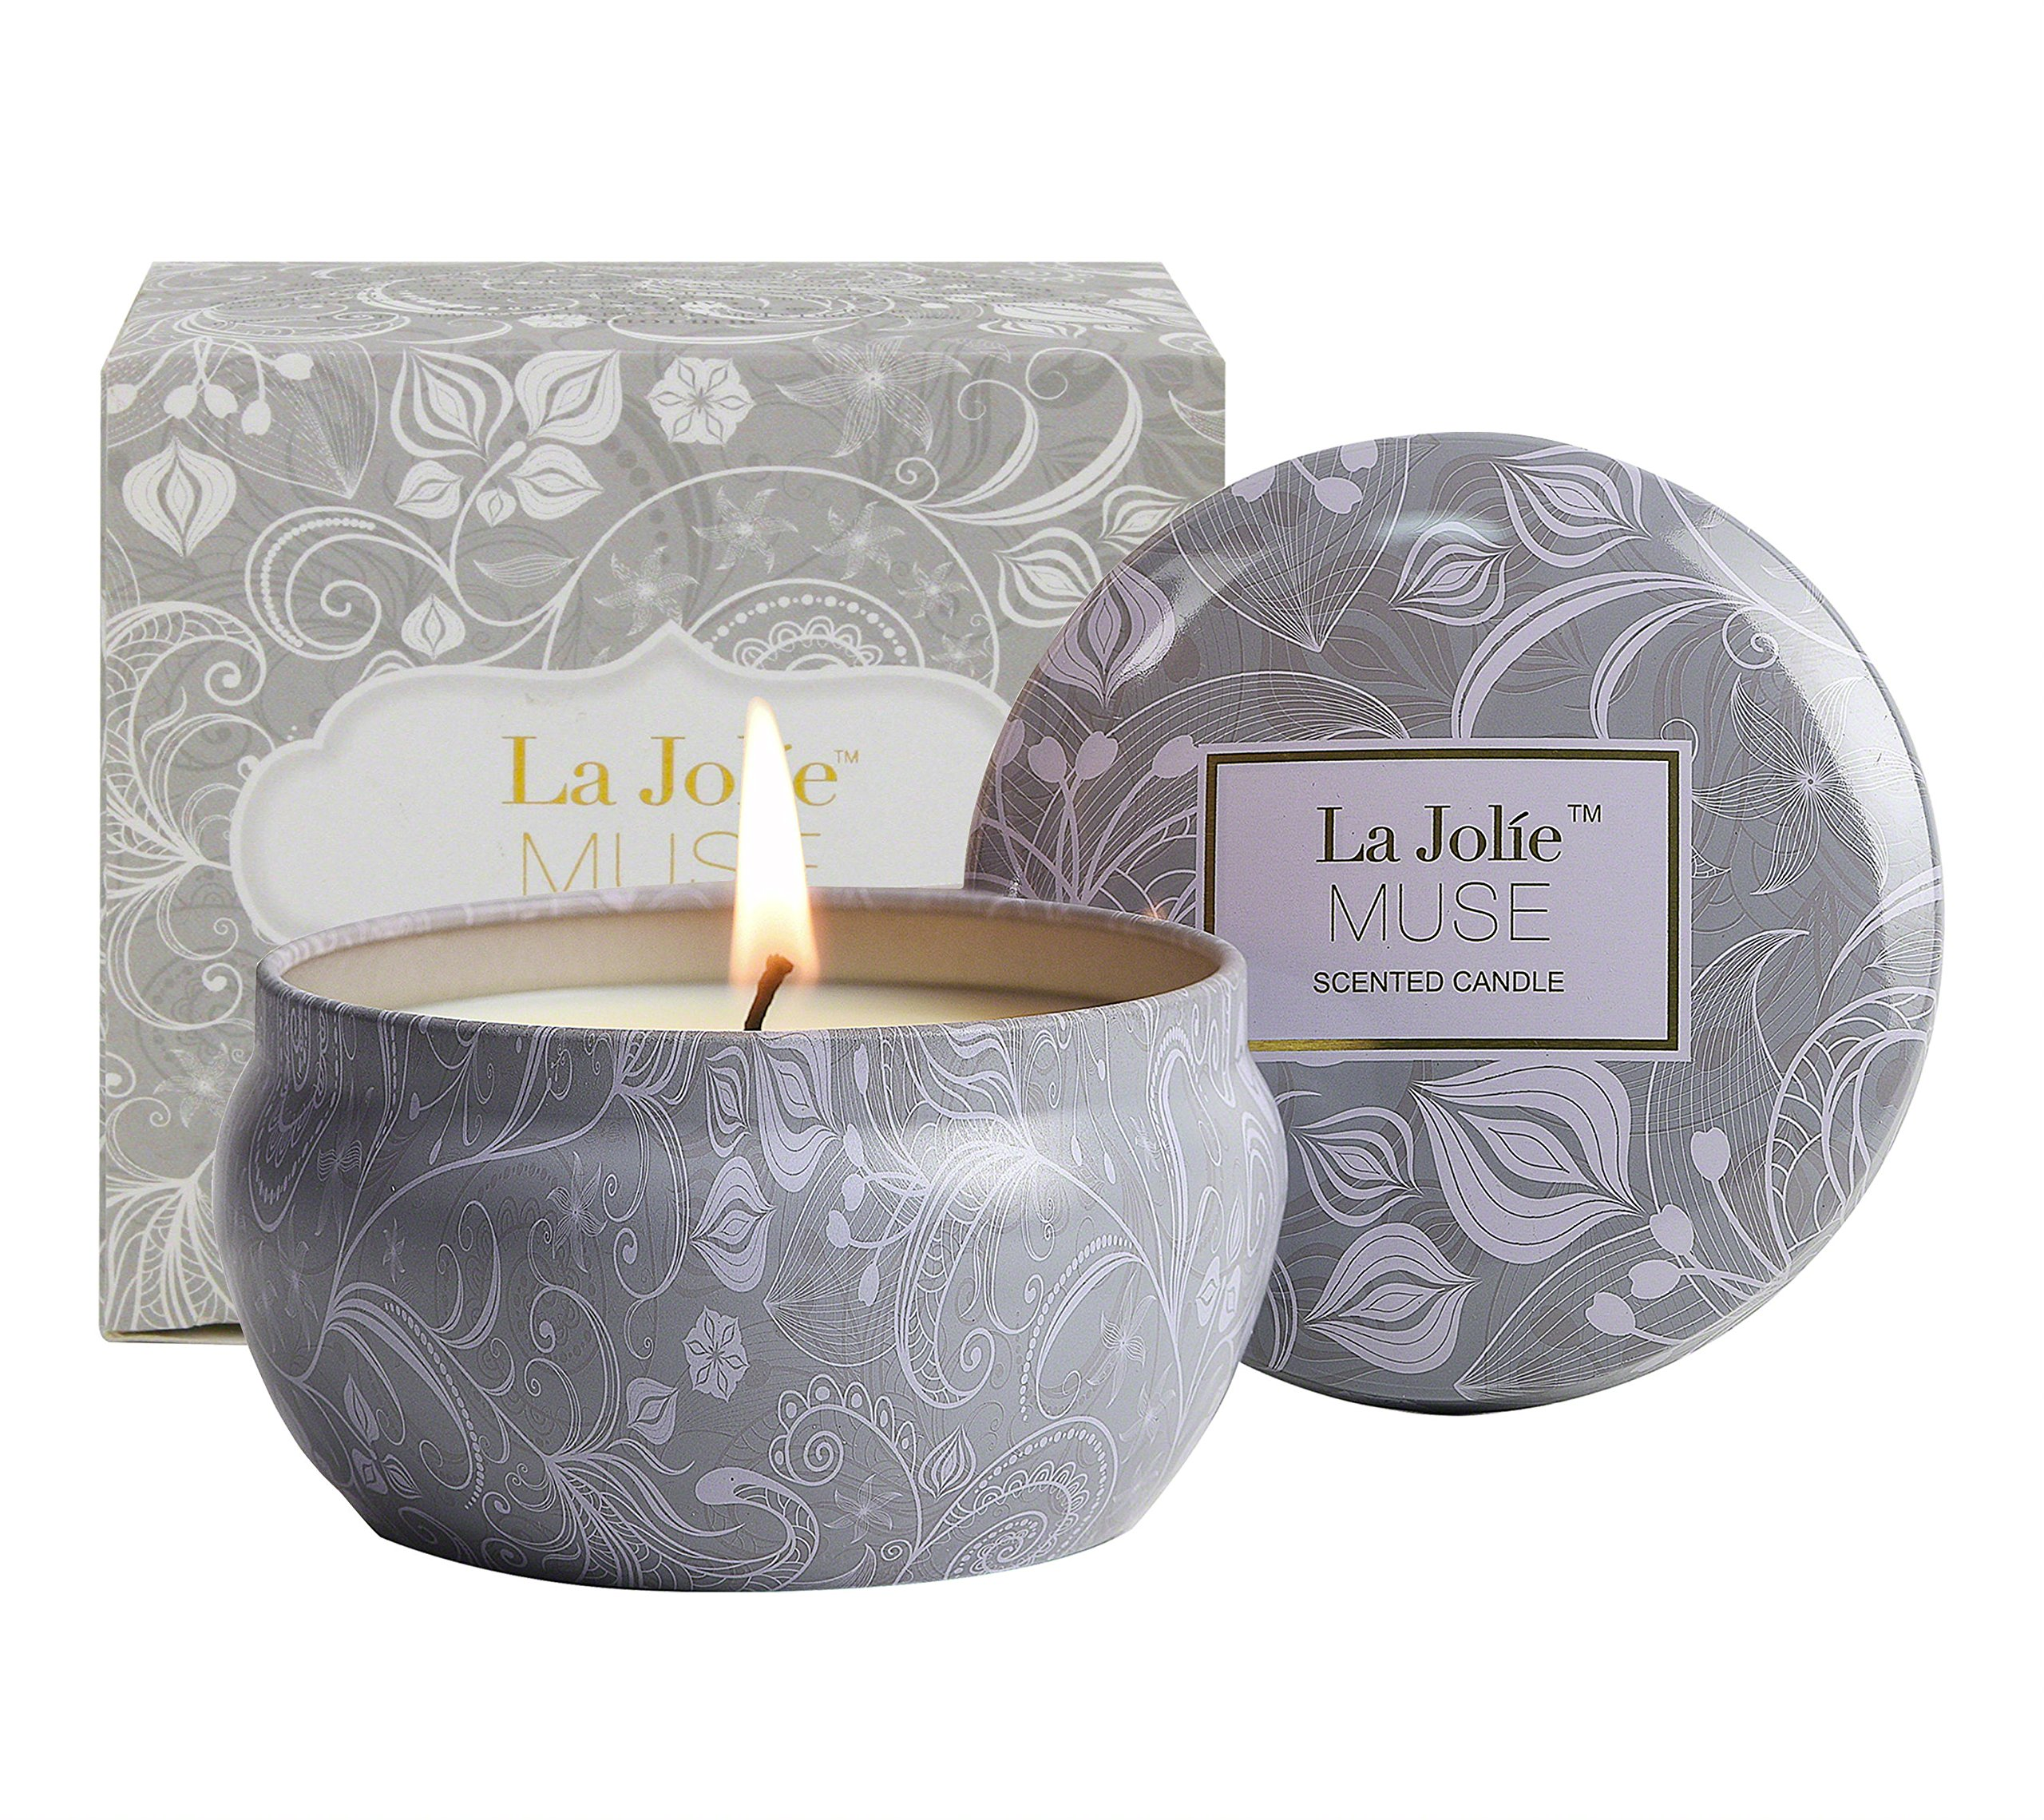 LA JOLIE MUSE Scented Candles Blue Lotus Aromatherapy Candle Gift Soy Wax, Stress Relief Travel Tin, 45 Hours Burn Time